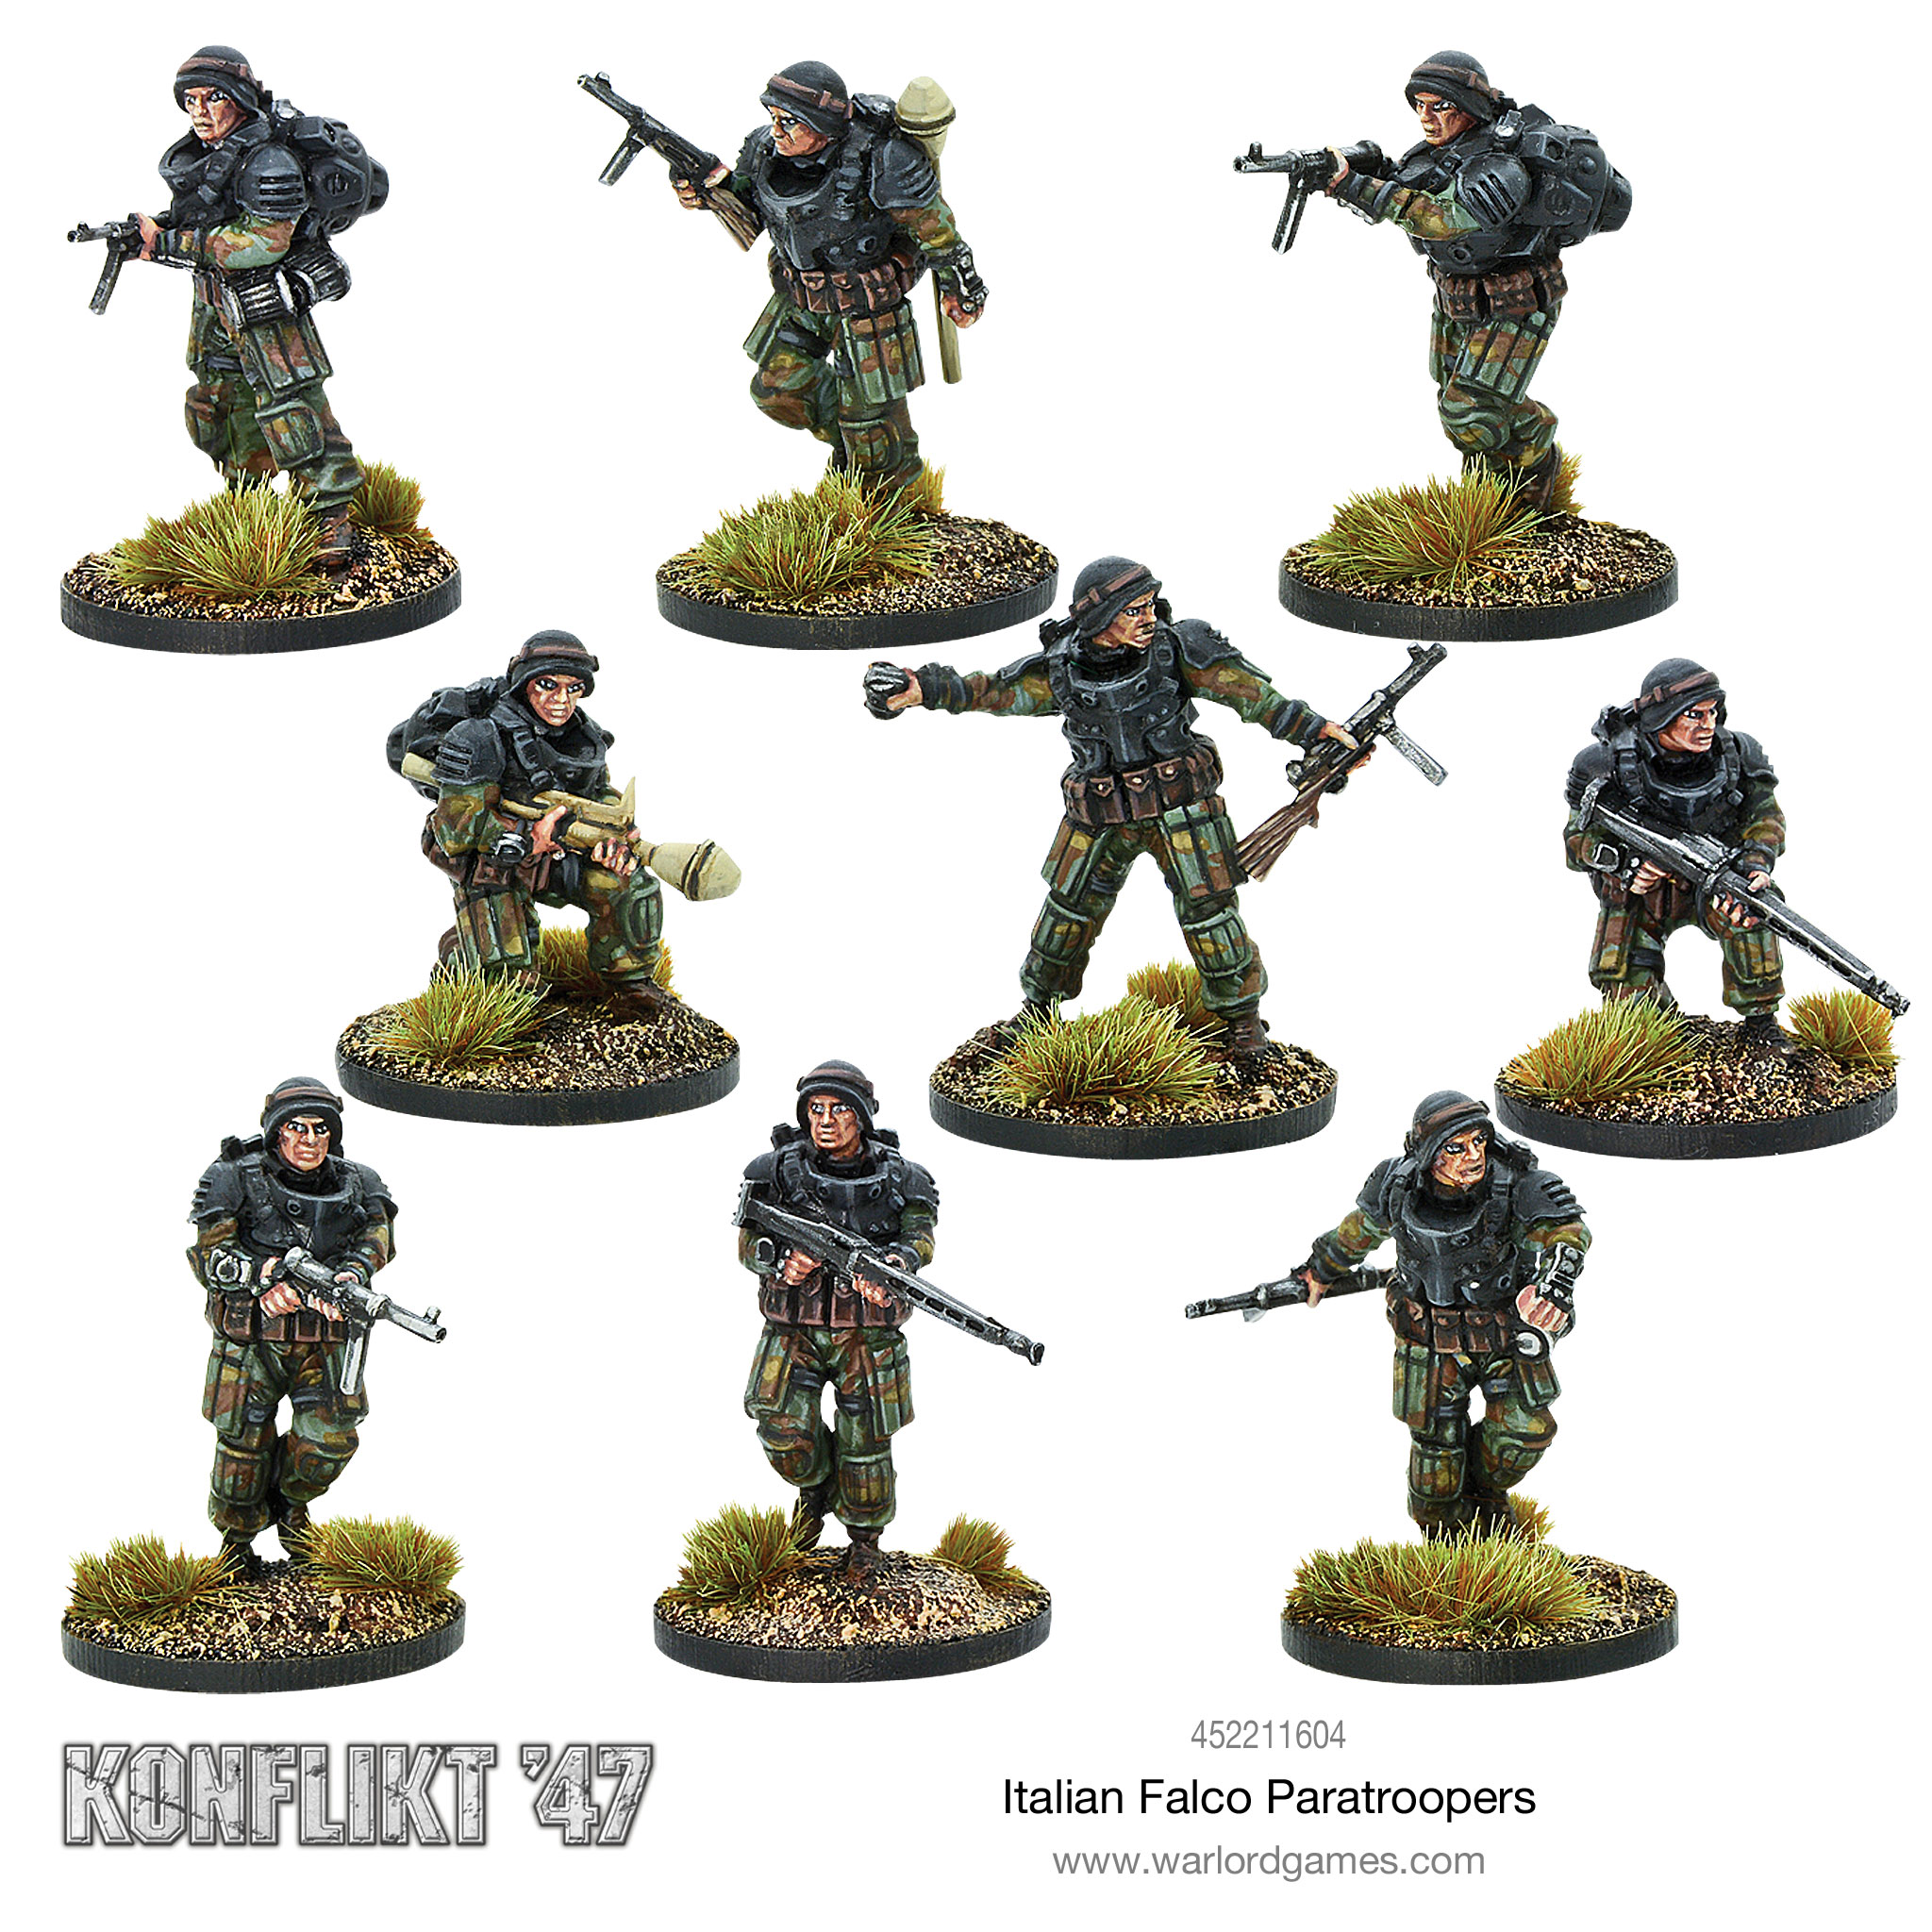 new product 651fb 67fff New: Italian Falco Paratroopers - Warlord Games